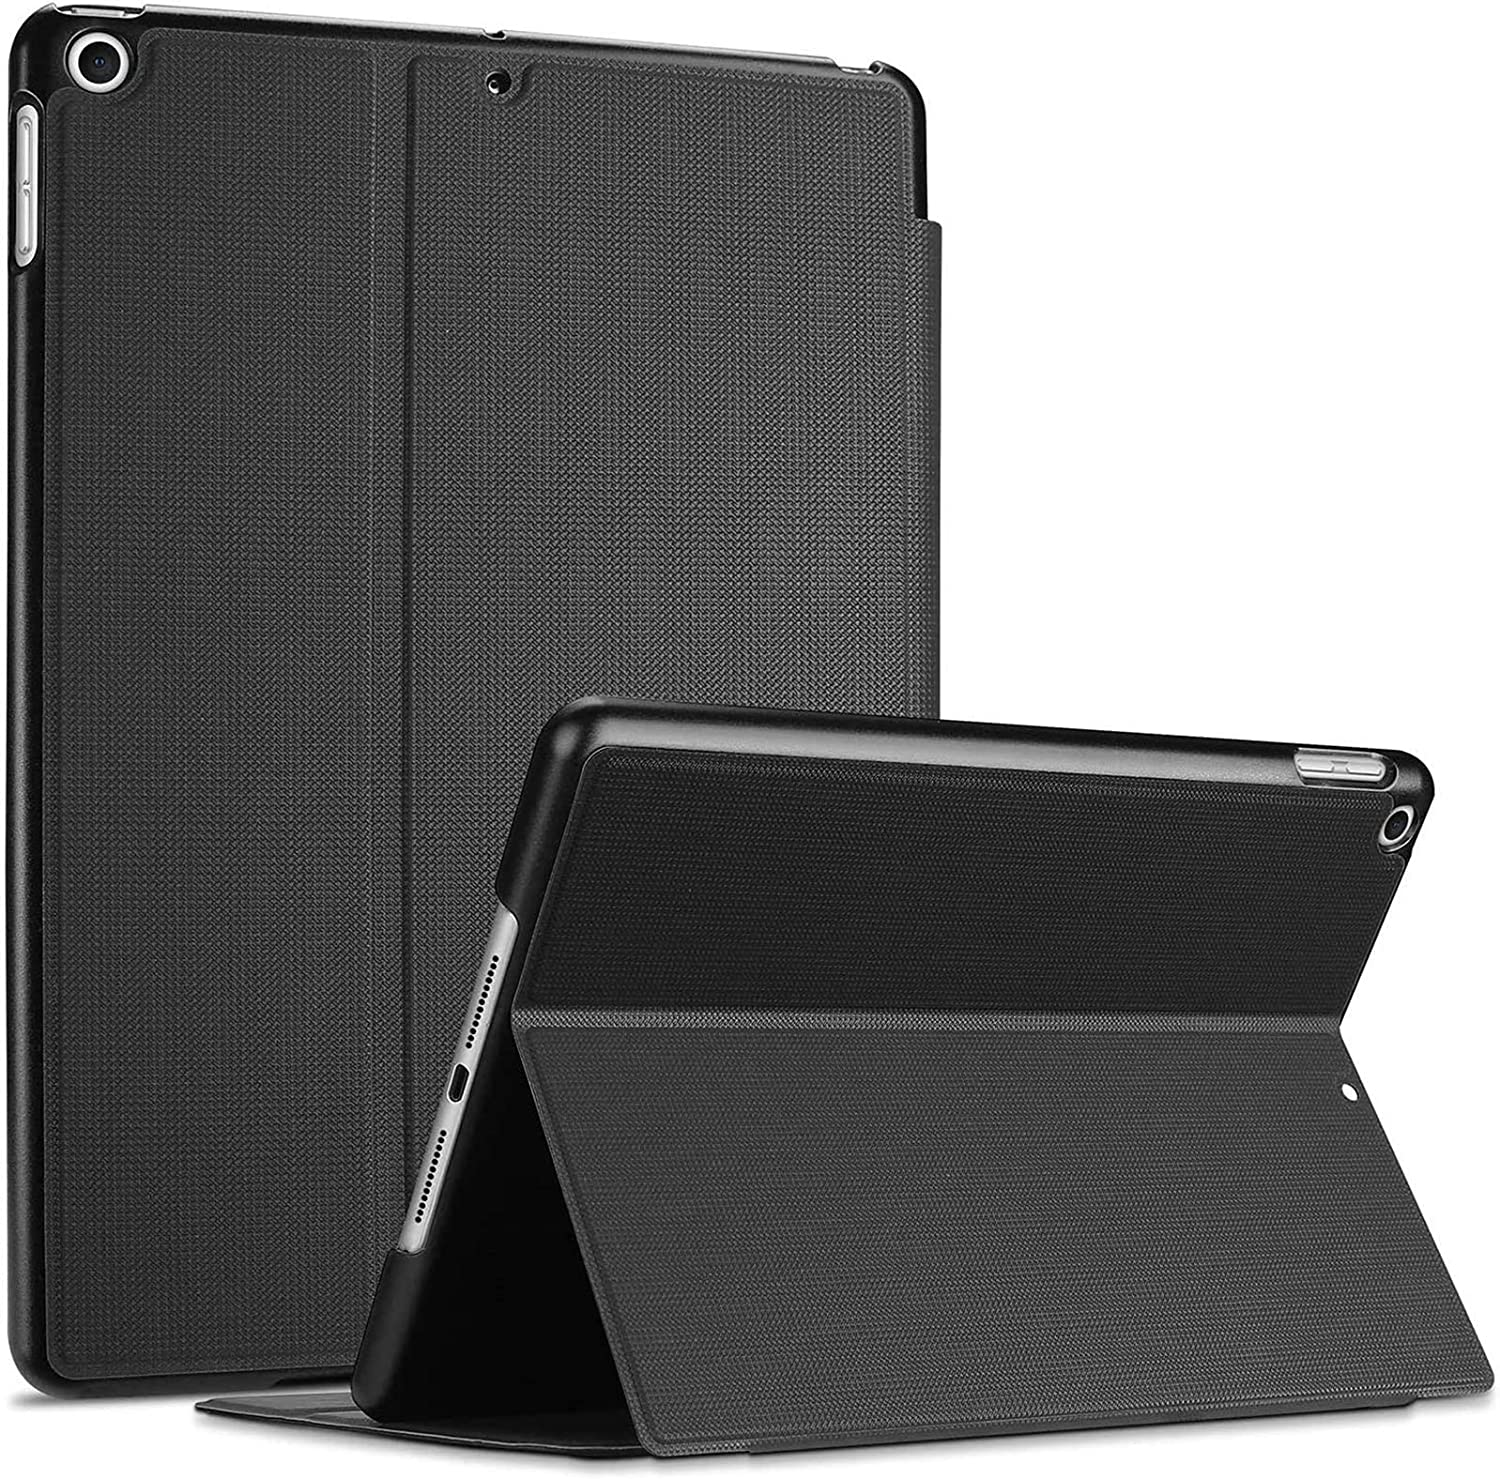 "ProCase iPad 10.2 Case 2020 iPad 8th Generation / 2019 iPad 7th Generation Case, Slim Stand Protective Case Folio Cover for 10.2"" iPad 8 2020 / iPad 7 2019 -Black"